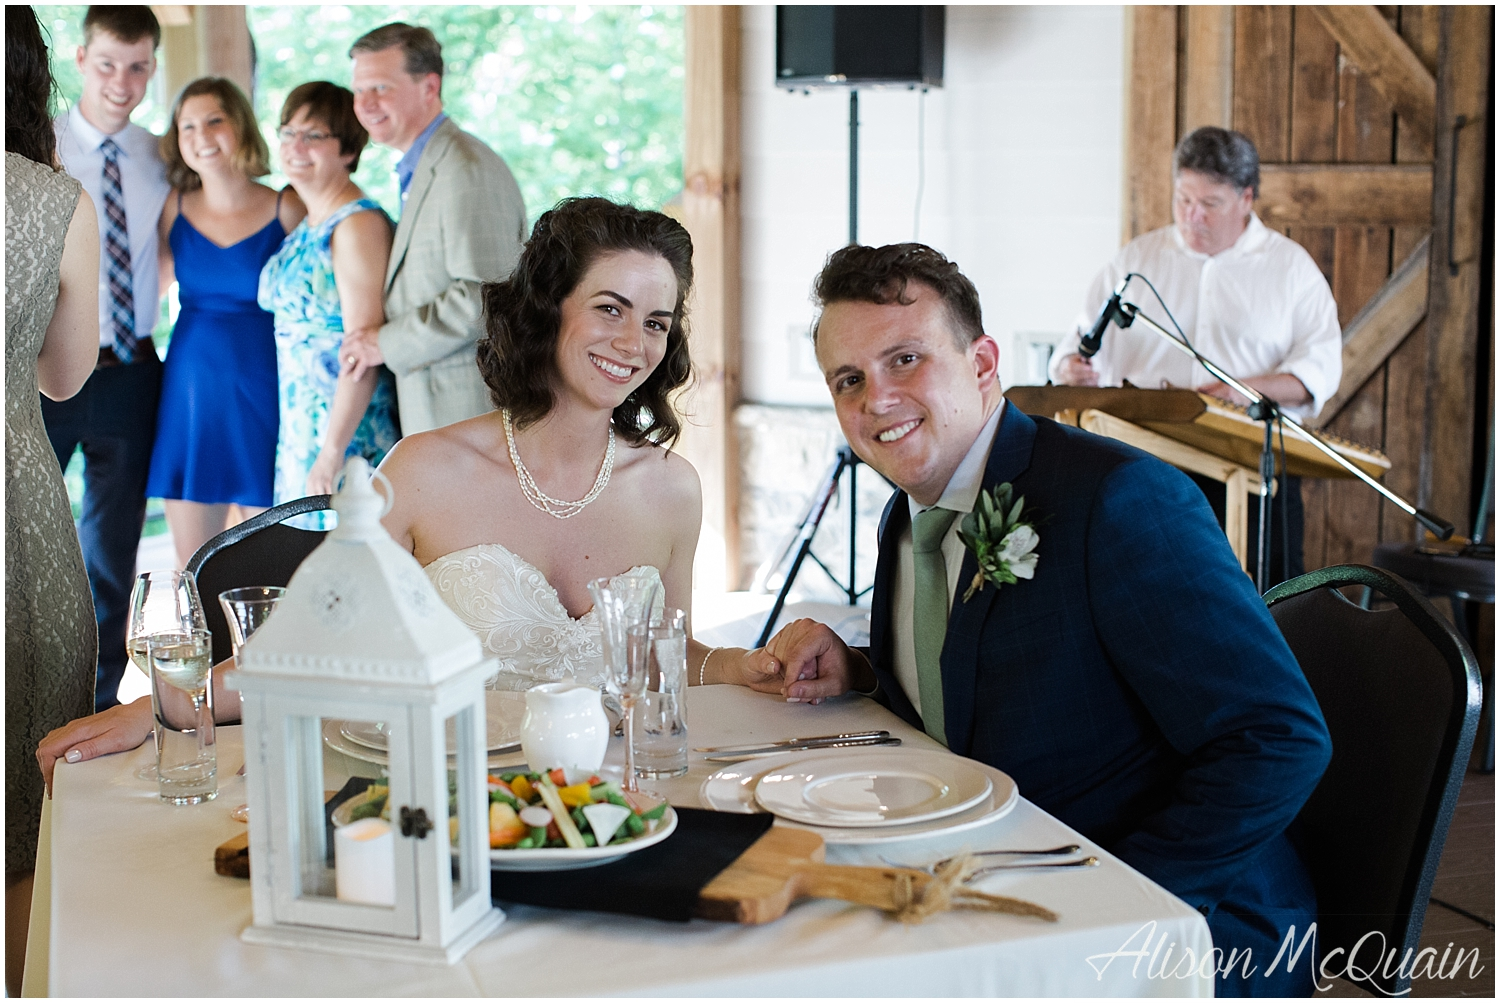 2018-05-23_0024LandC_wedding_dancingbearlodge_townsend_tn_amp.jpg